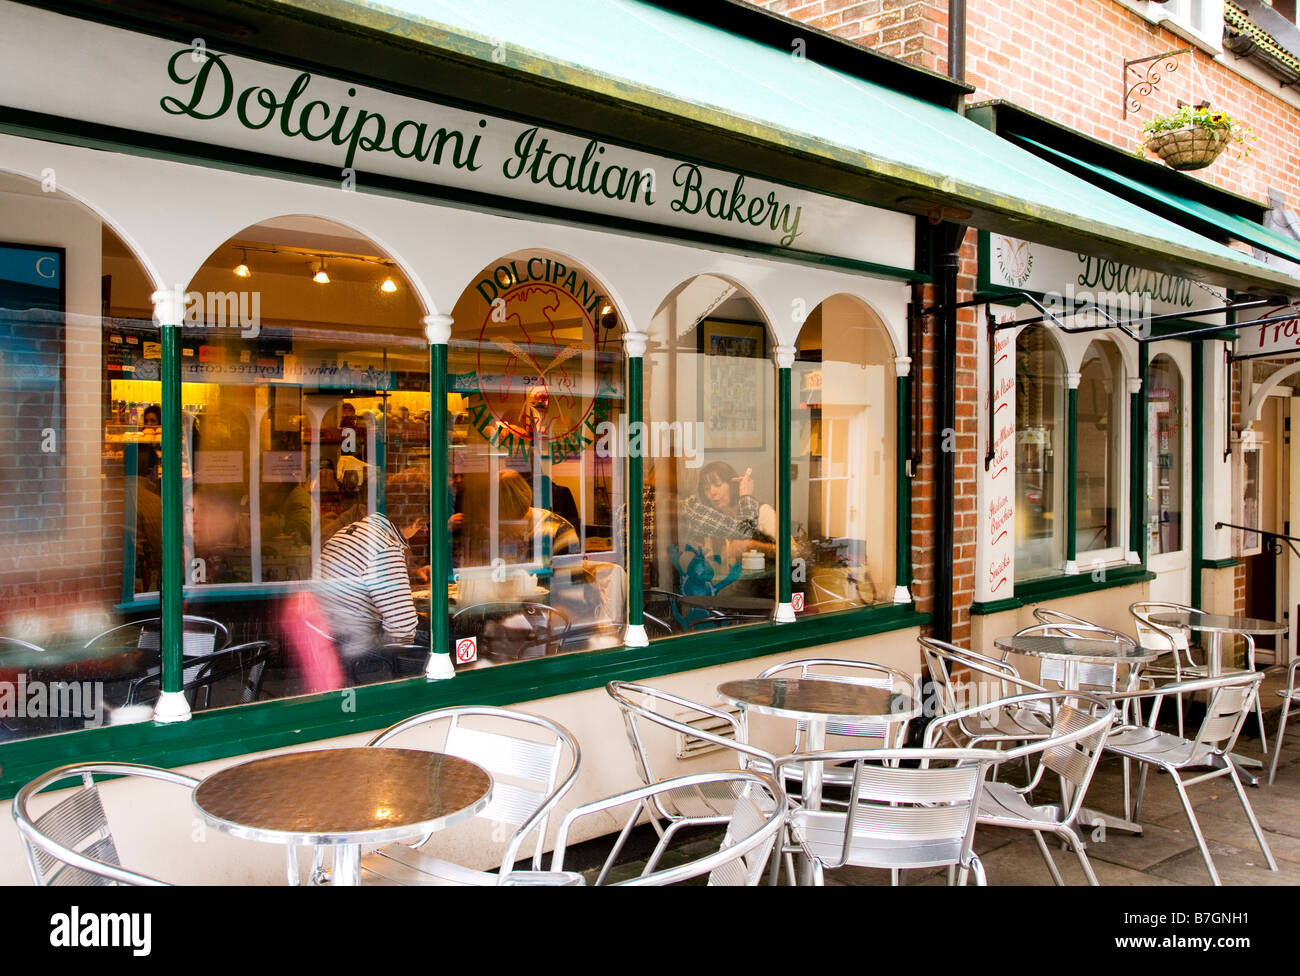 English In Italian: An Italian Bakery And Cafe In Old Swan Yard In The Typical